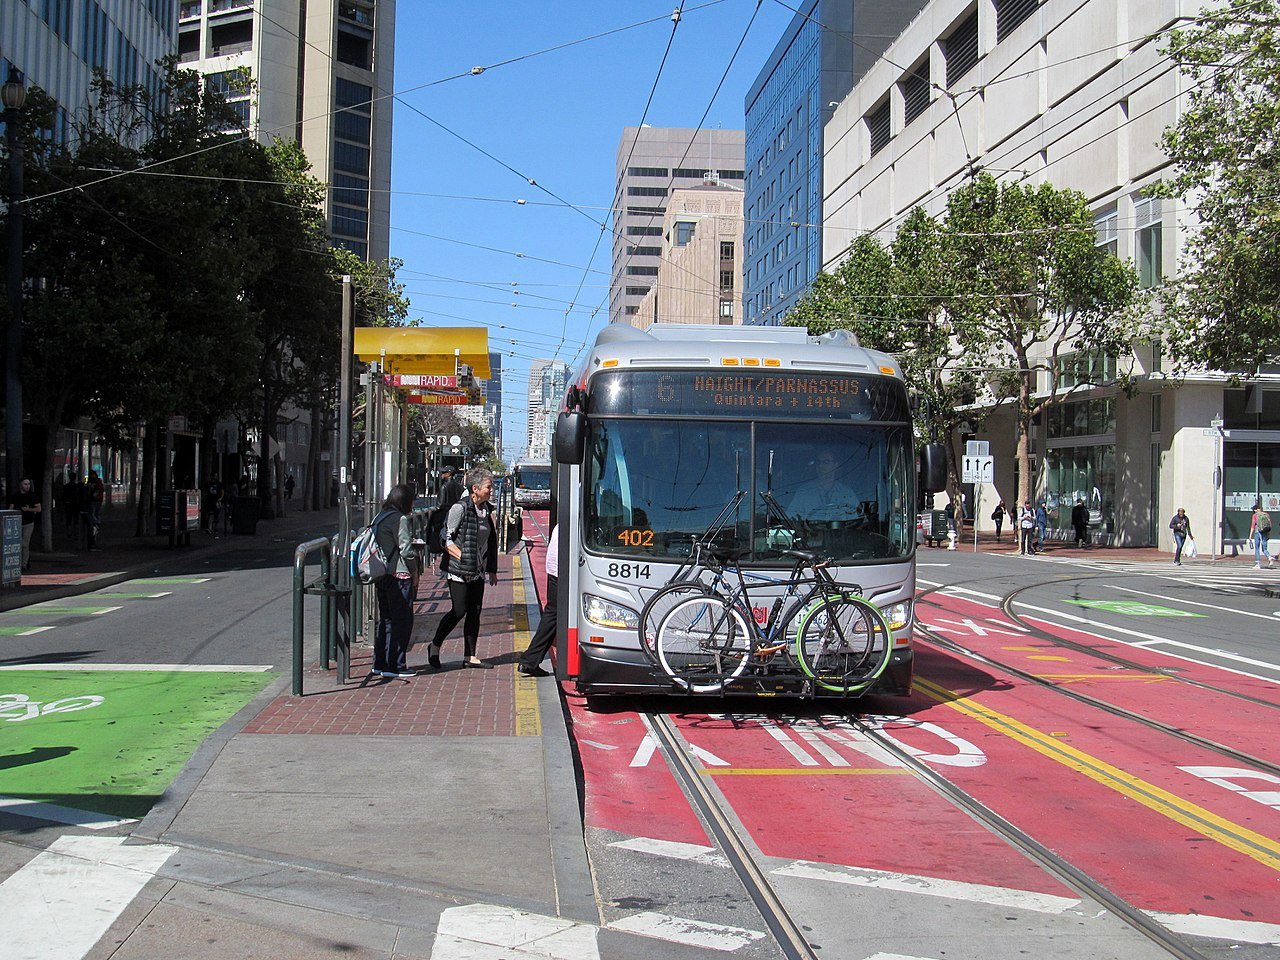 A bus pulling up to a Market Street stop in a red transit-only lane.